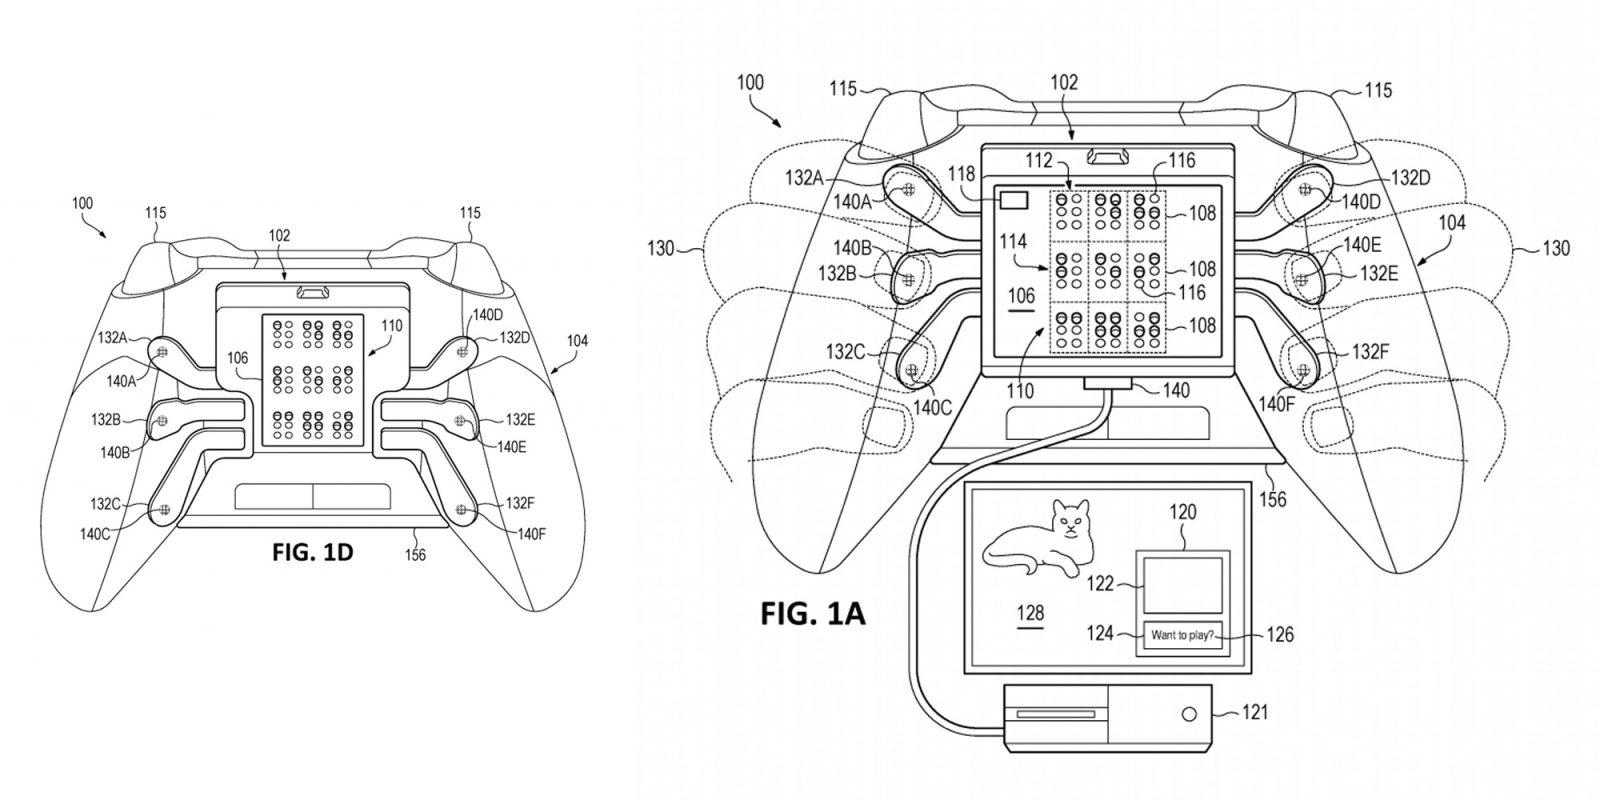 Wiring And Diagram: Diagram Of Xbox One